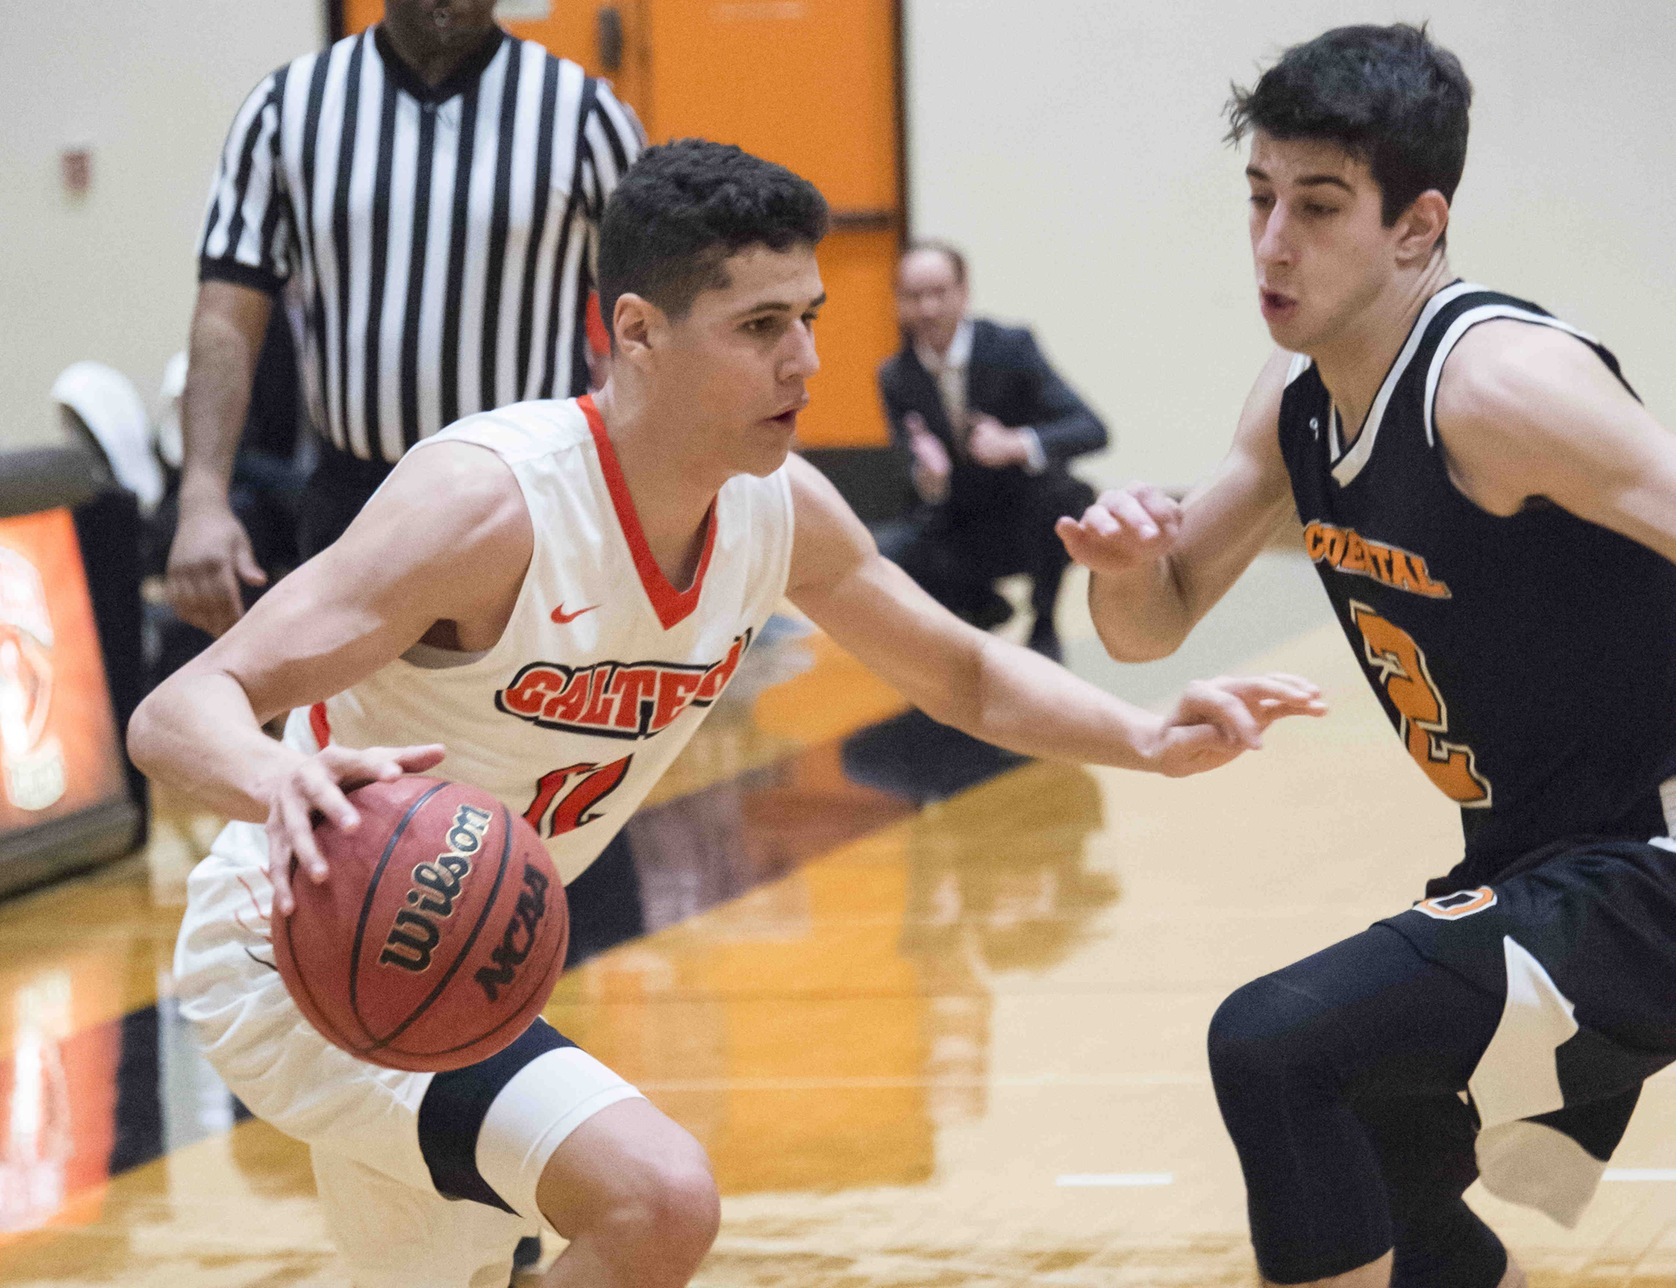 Caltech Holds Unbeaten Oxy to Season-Low Total